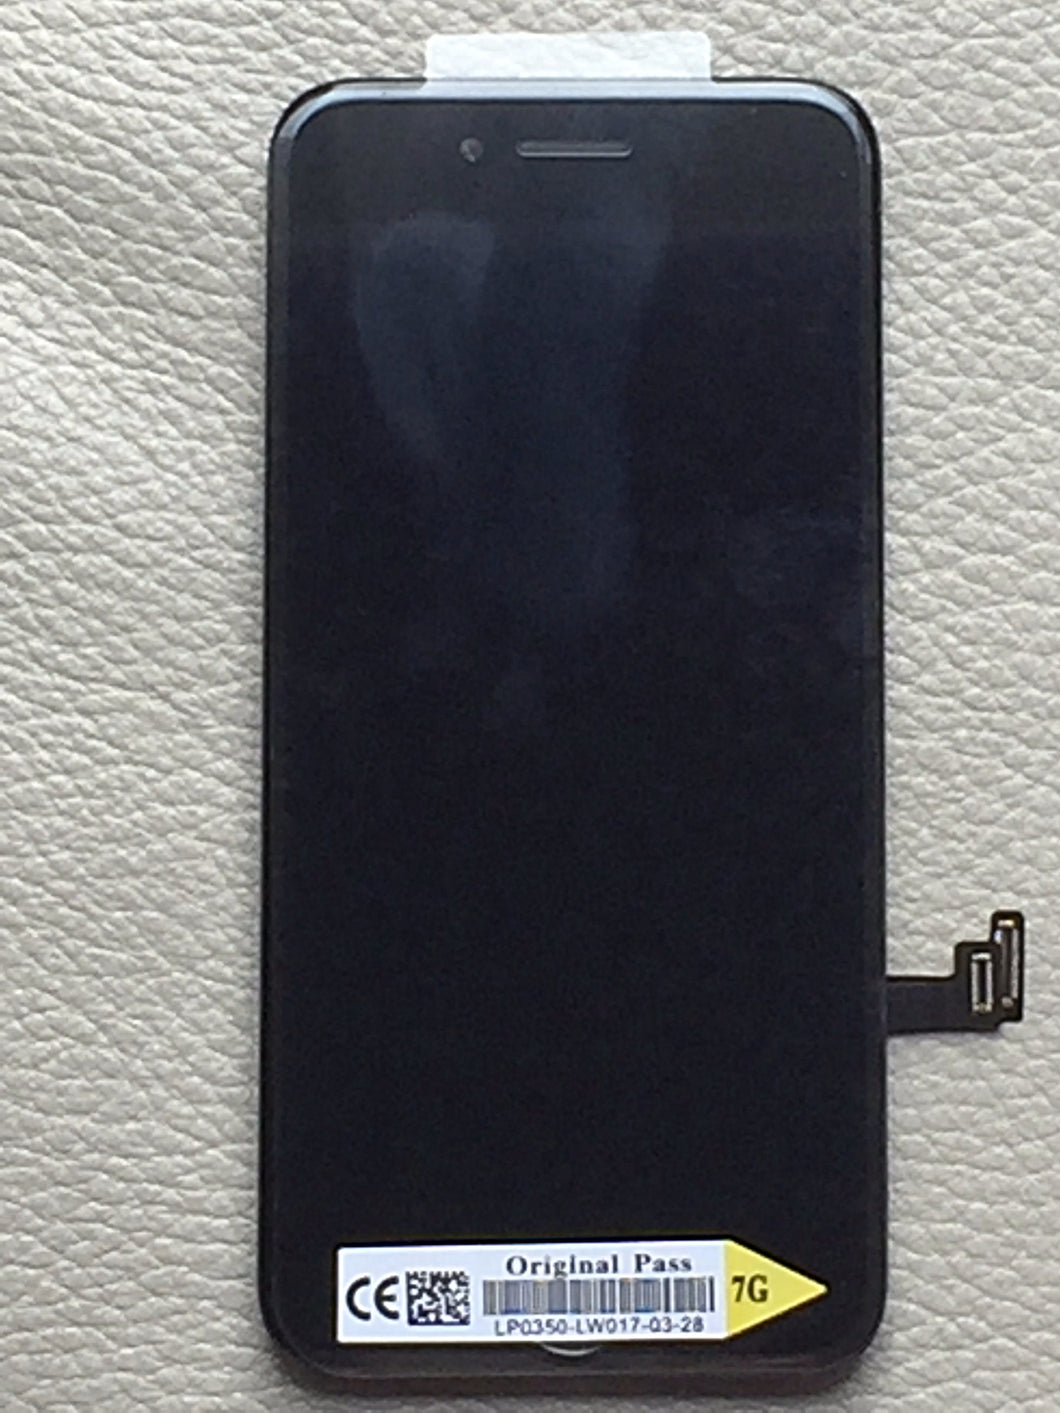 OEM Refurbished iPhone 7 LCD Screen Digitizer -Black - 2 Year Warranty